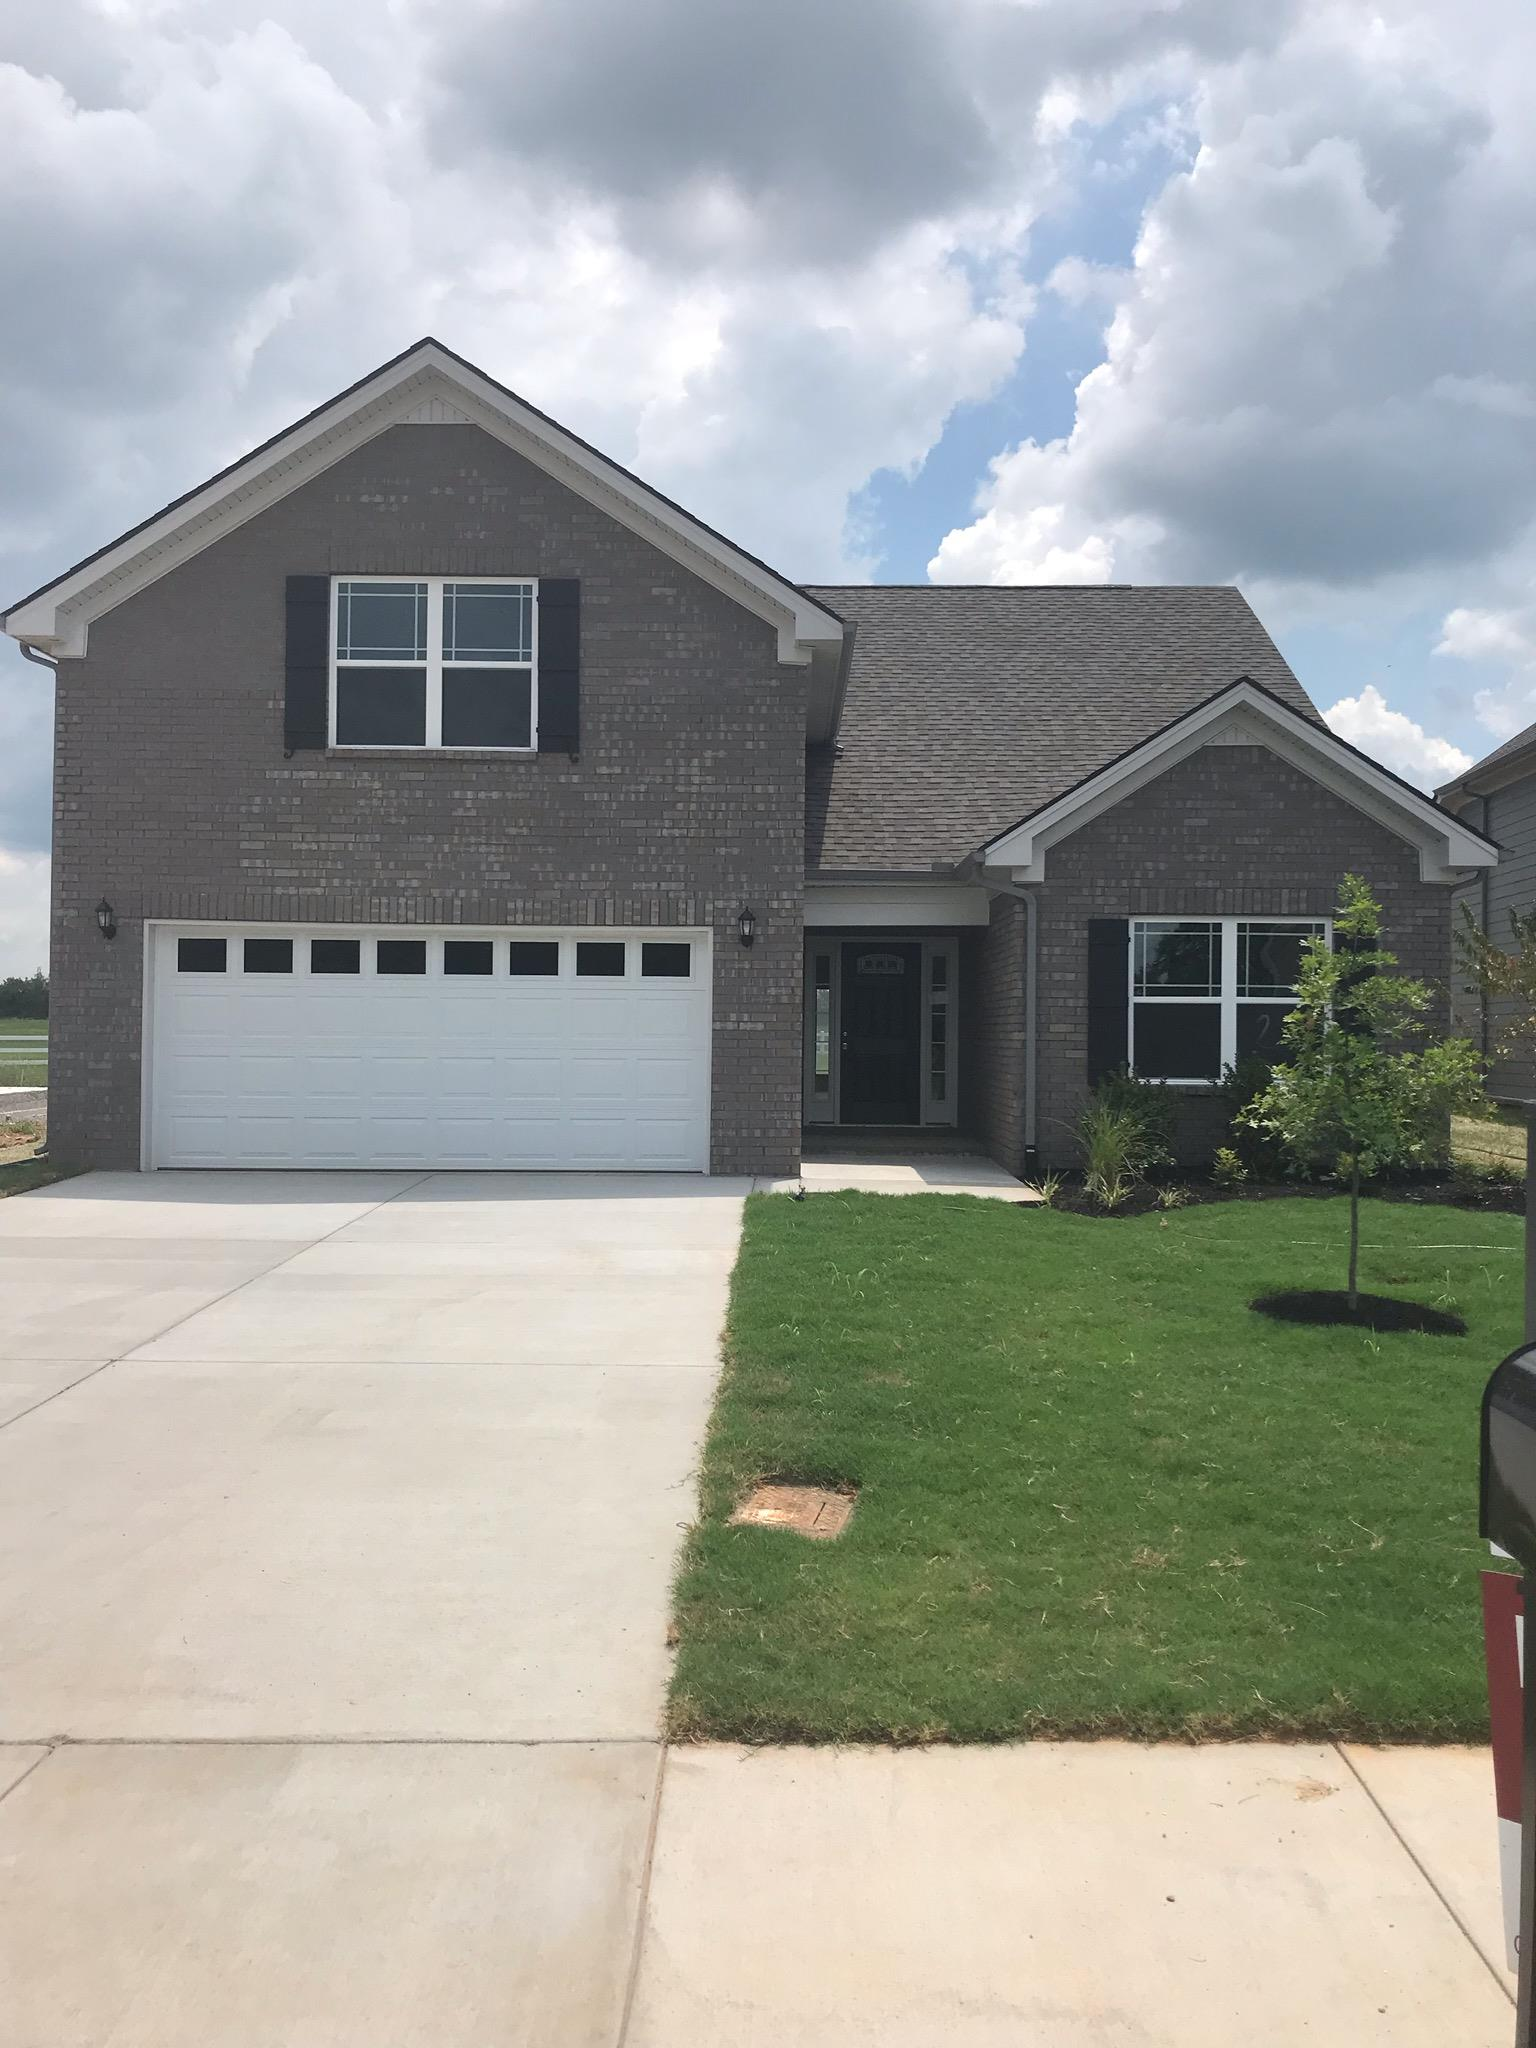 3411 Pear Blossom Way / Lot 23, Murfreesboro, TN 37127 - Murfreesboro, TN real estate listing